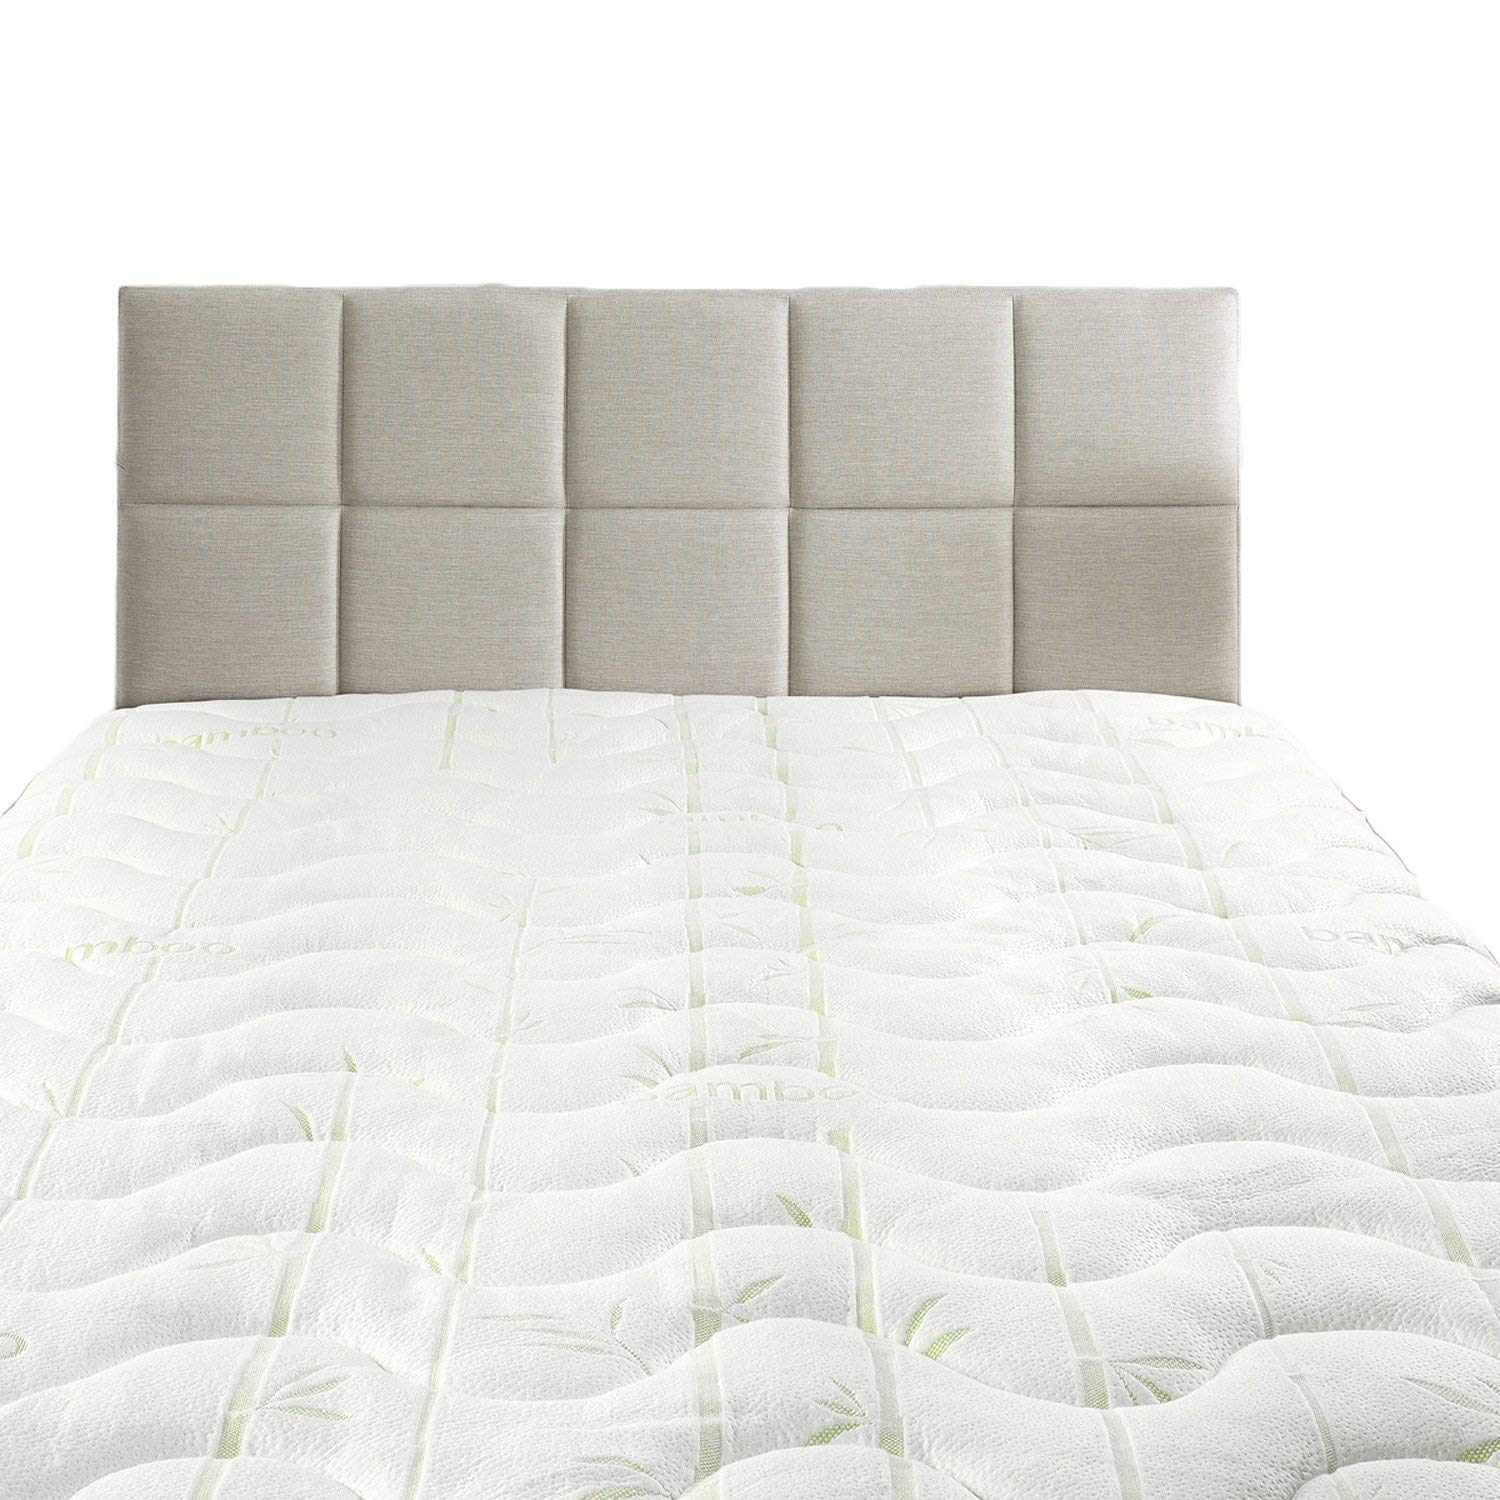 Royal Hotel Hypoallergenic Cool Bamboo Jacquard Fitted Mattress Topper Queen Size Extra Plush and Soft Mattress Pad